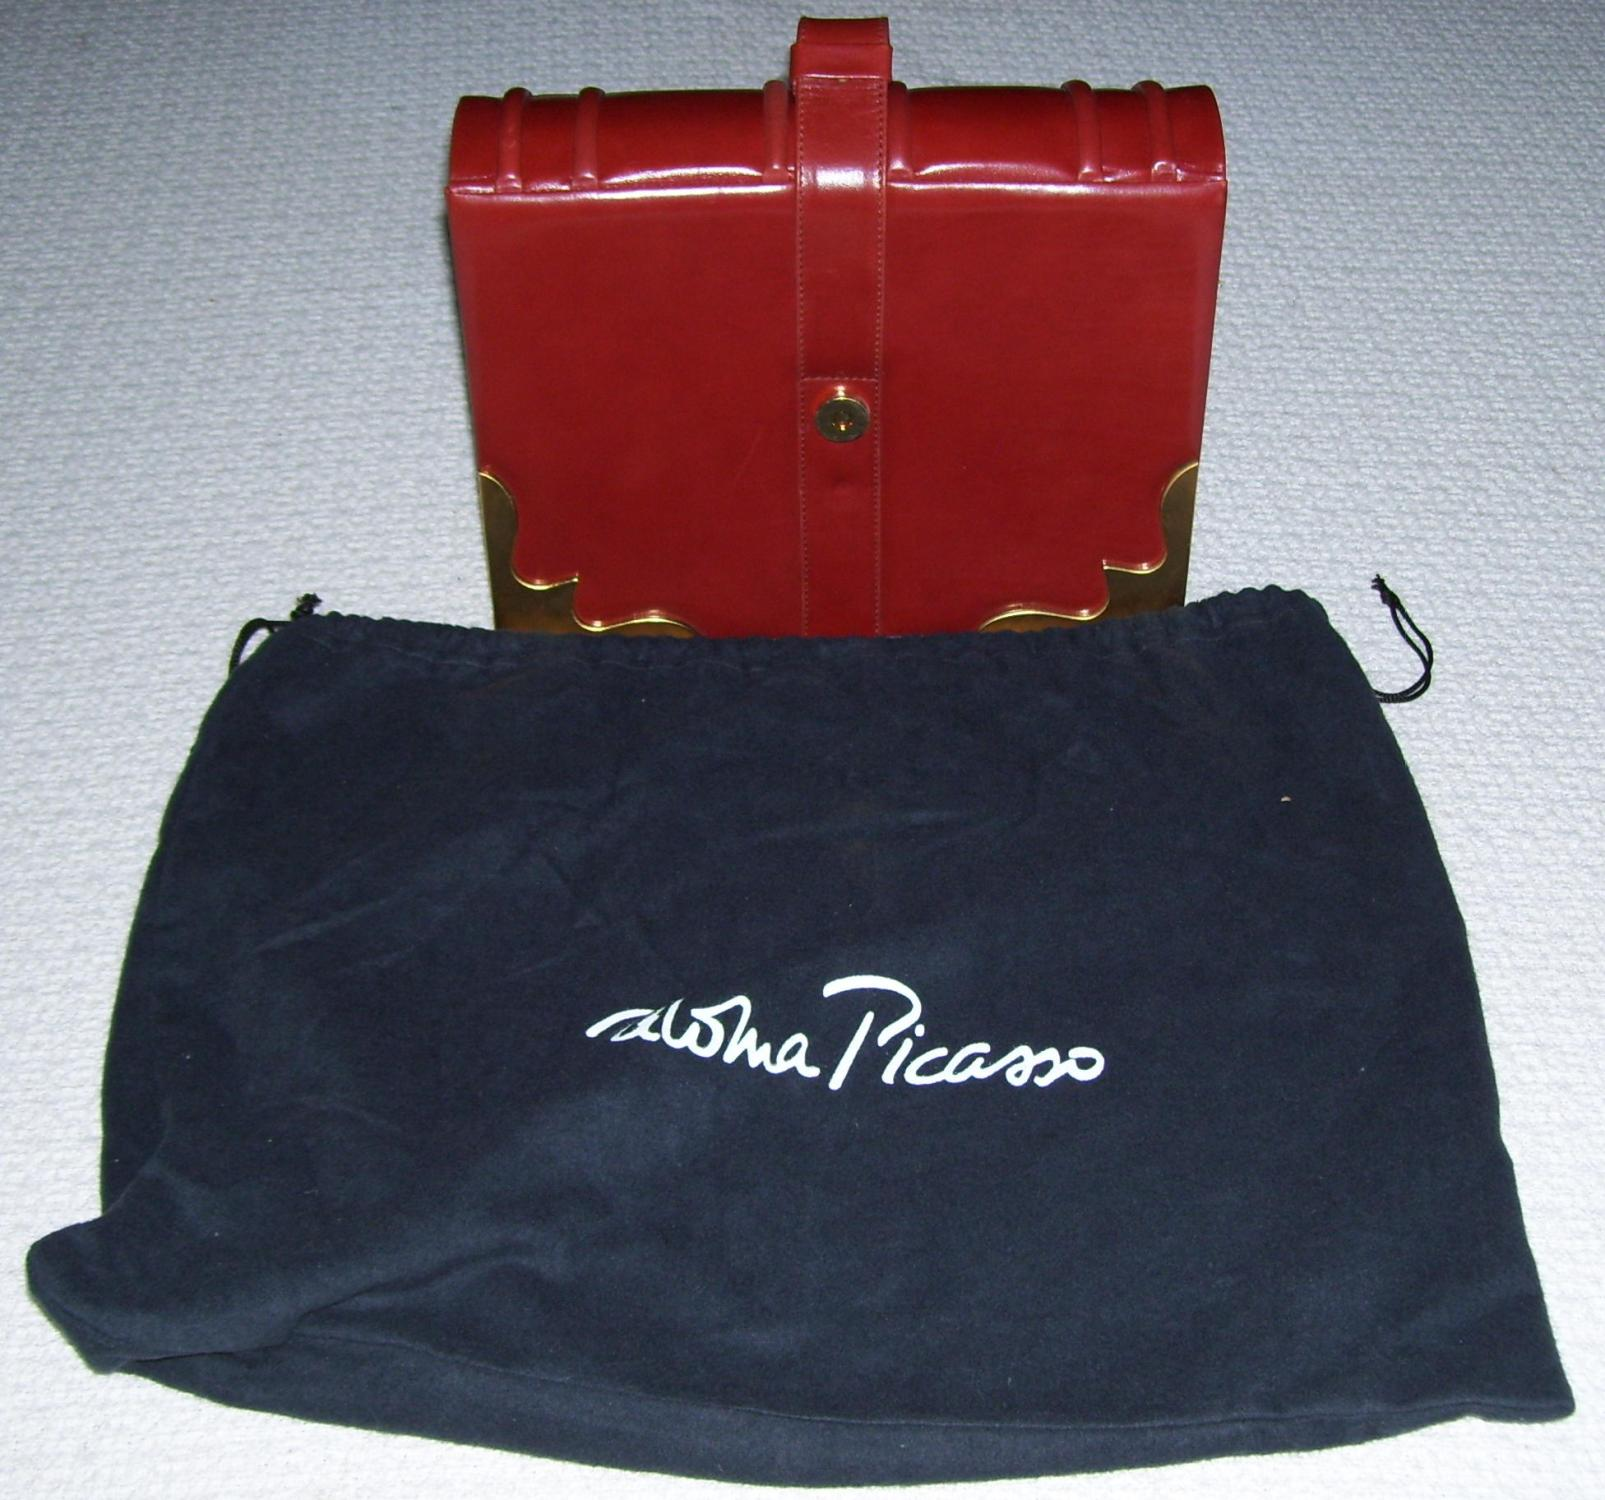 Paloma Picasso Book Purse